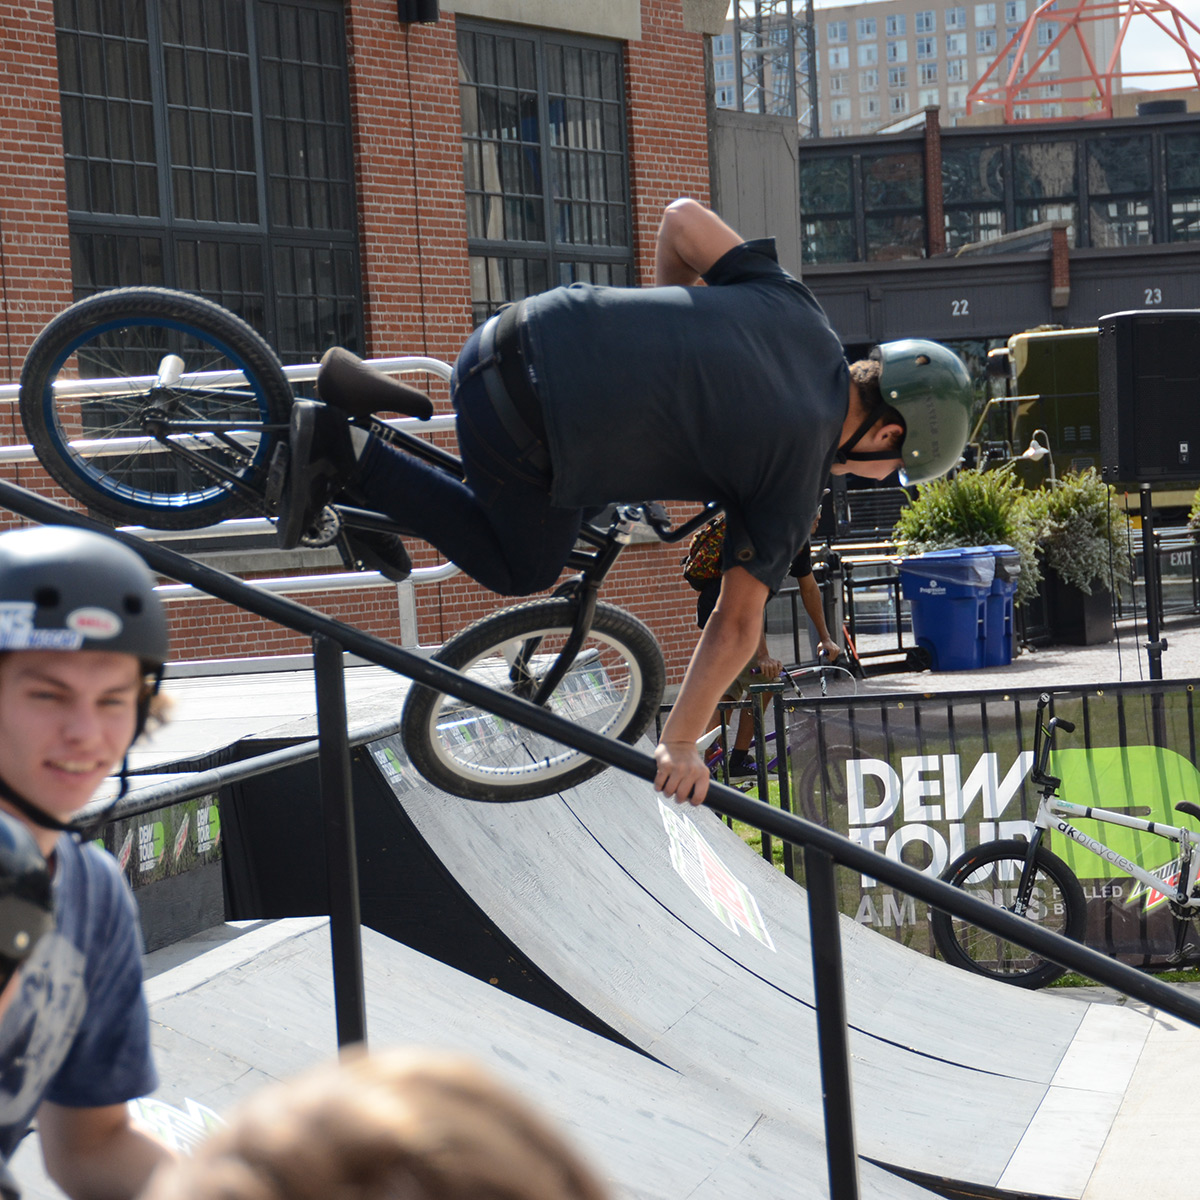 Rail Handplant at BMX Dew Tour Am Series in Toronto